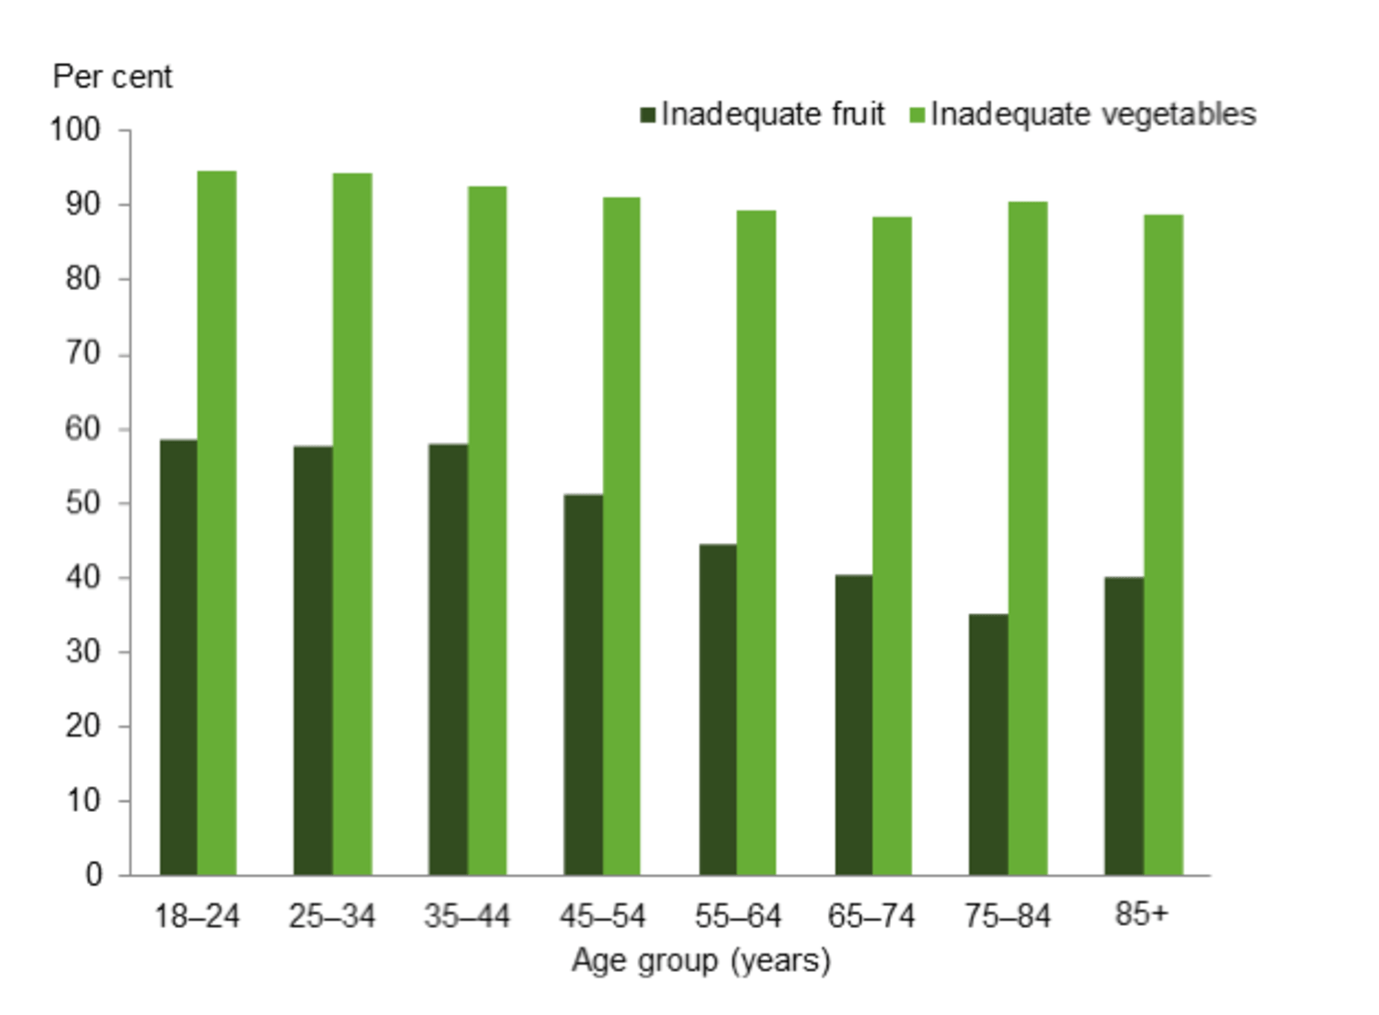 Australians eating inadequate fruit and vegetables.ABS 2013. Australian Health Survey: Updated Results, 2011–12. ABS cat. no. 4364.0.55.003. Canberra: Australian Bureau of Statistics.,Author provided